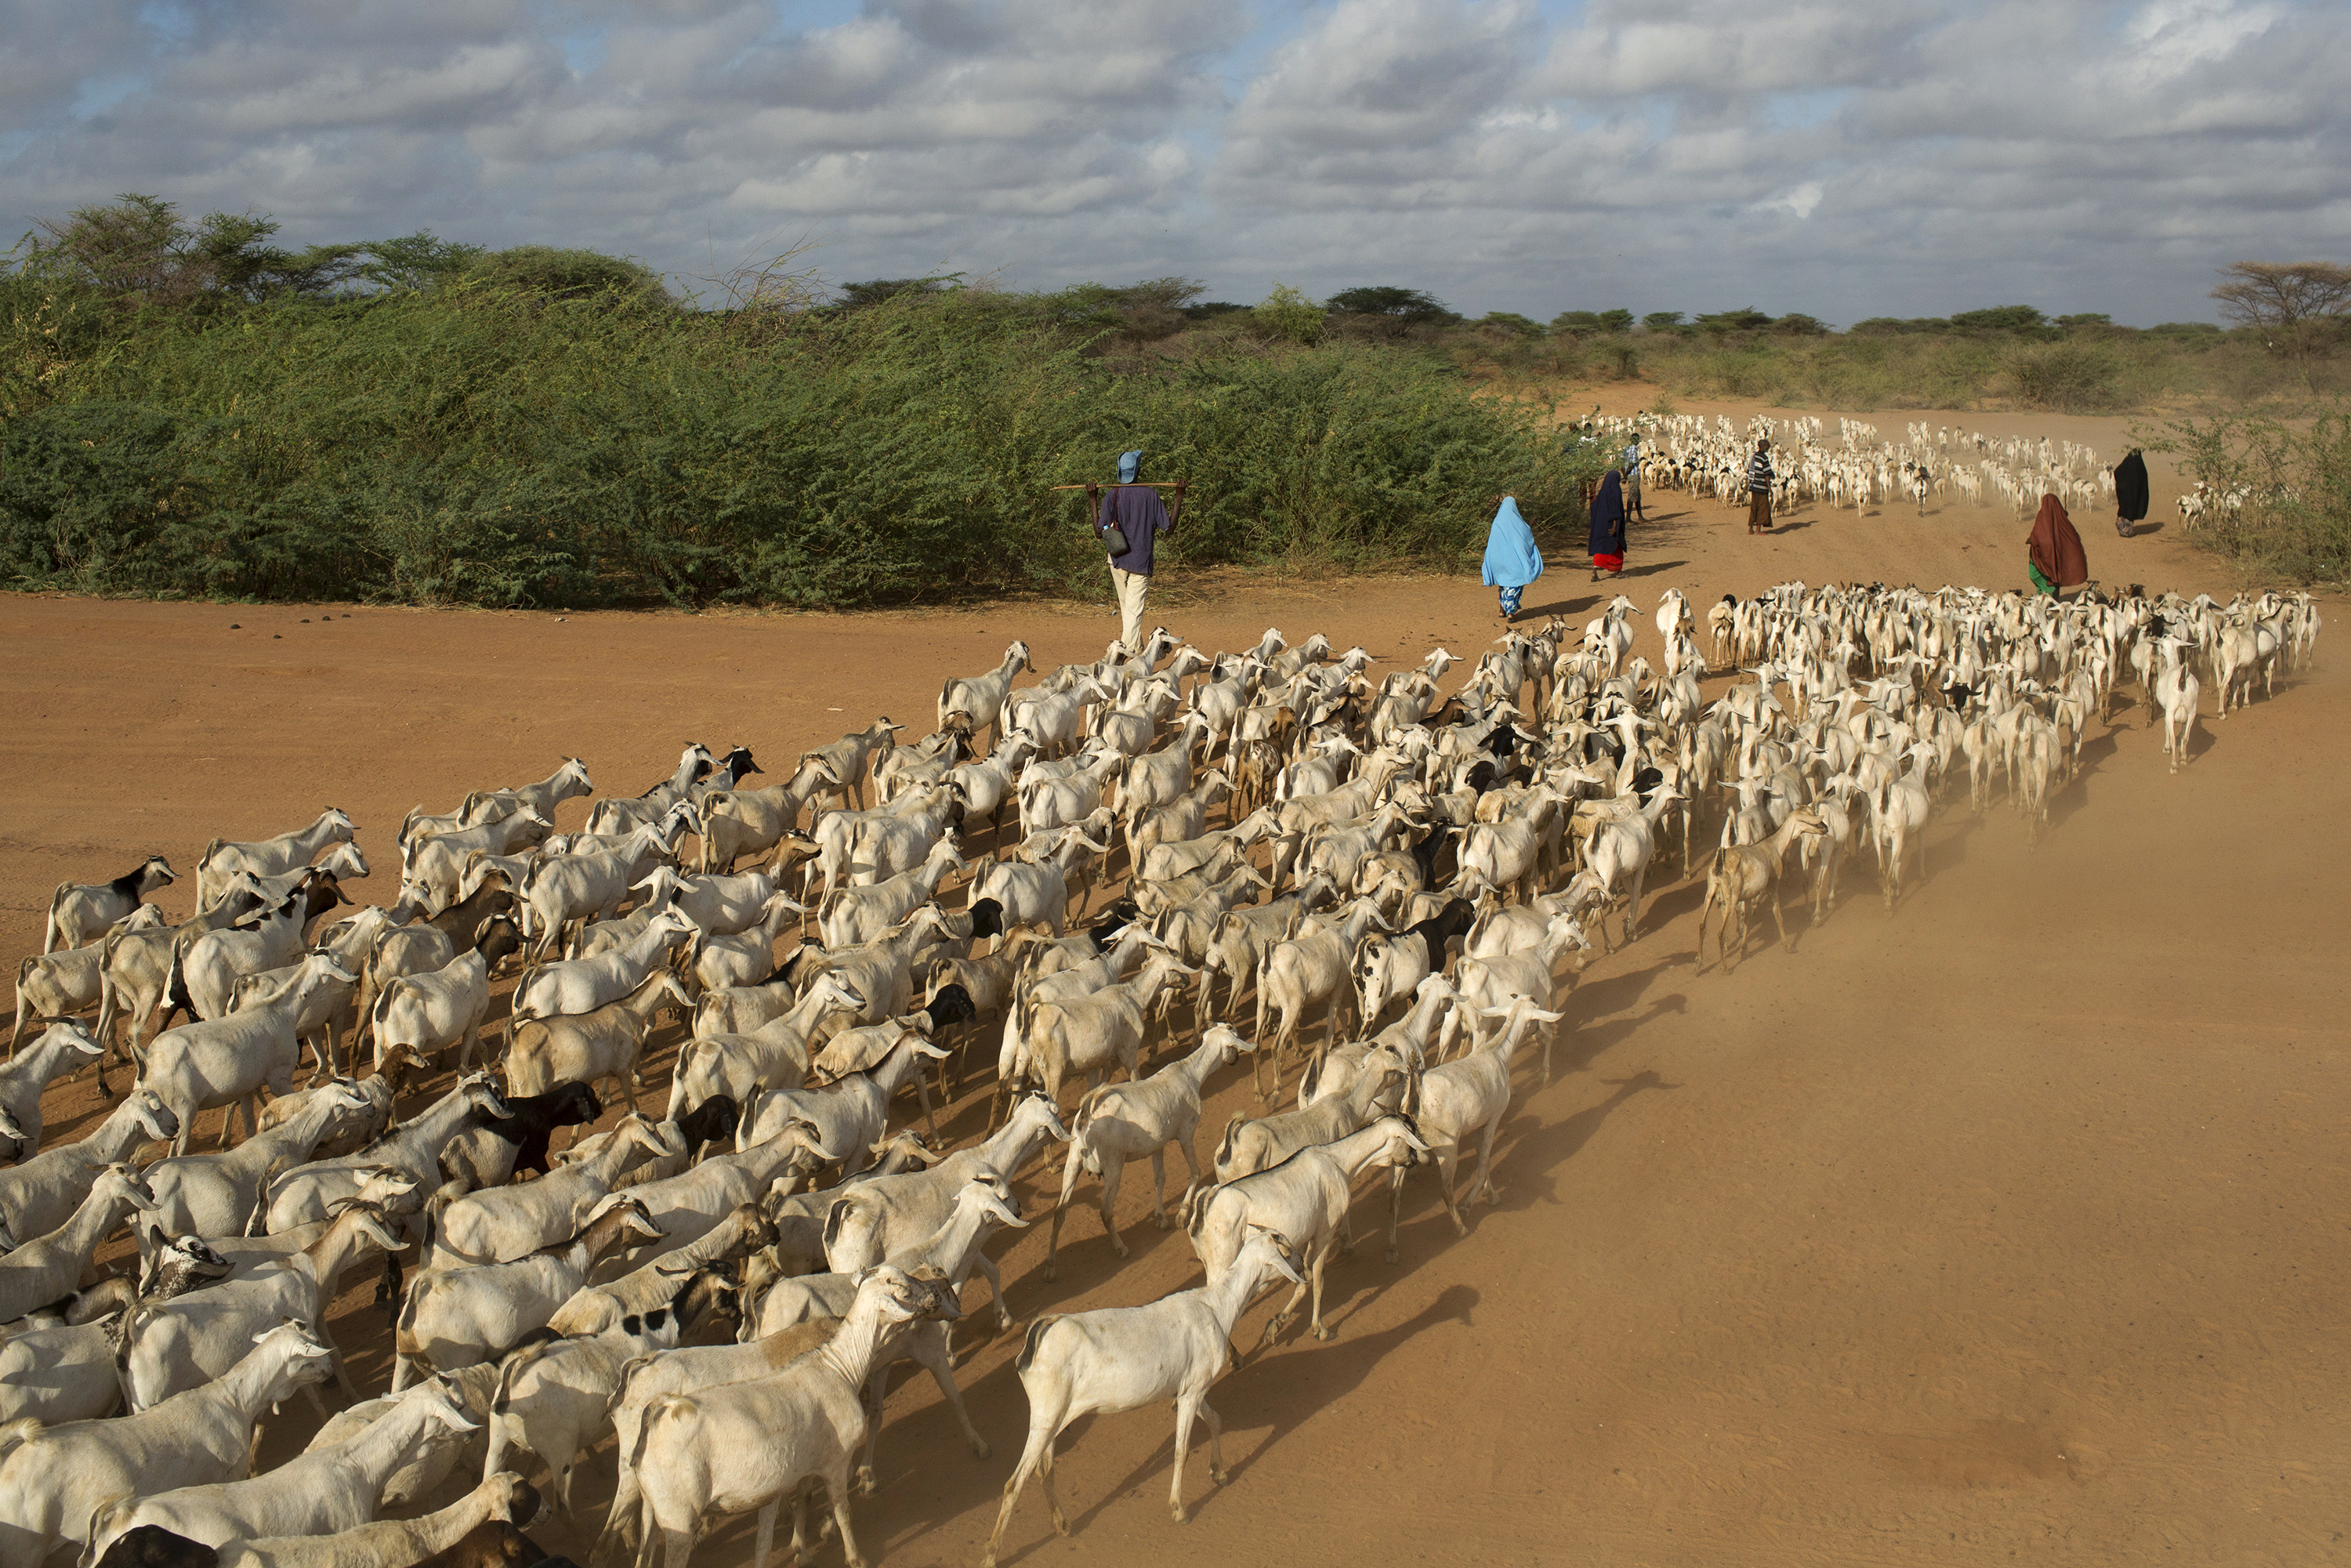 Goats are herded to a grazing ground in the early hours of the morning near Dagahale, one of several refugee settlements in Dadaab in northeastern Kenya on Oct. 9, 2013. People work to have a normal routine even in a makeshift living environment. Photo by Siegfried Modola/Reuters